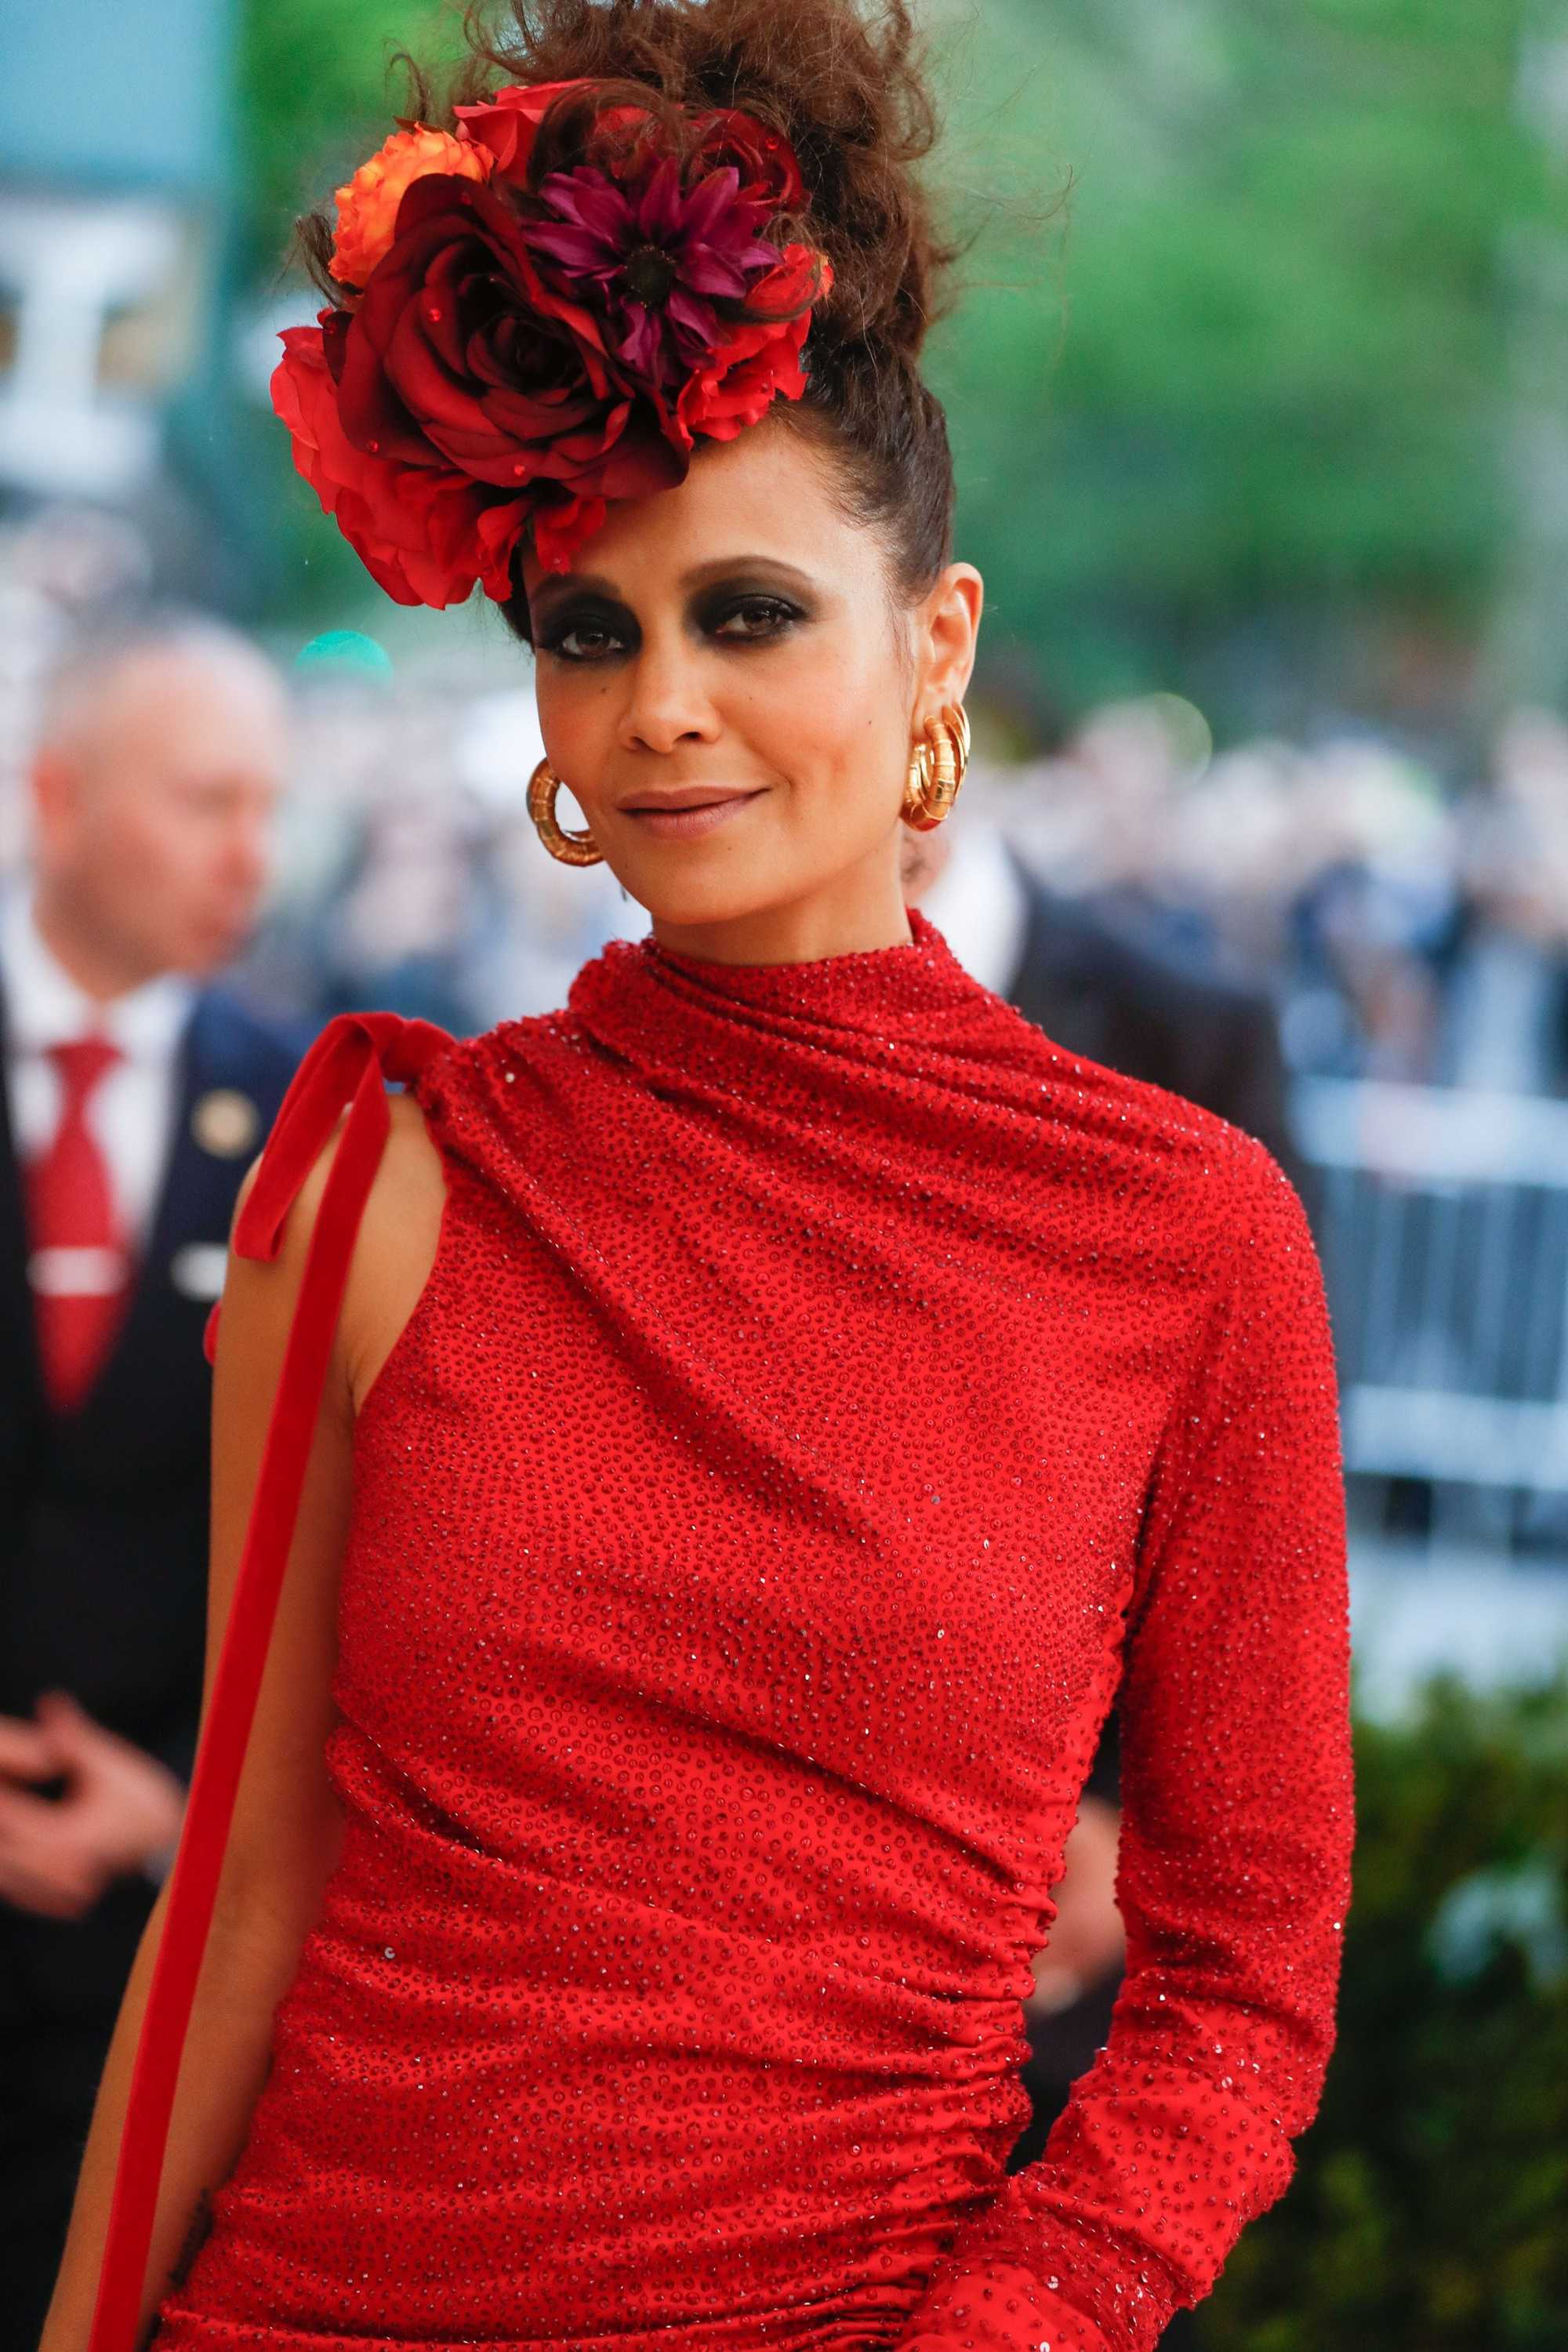 thandie newton with floral updo and red dress at the met gala